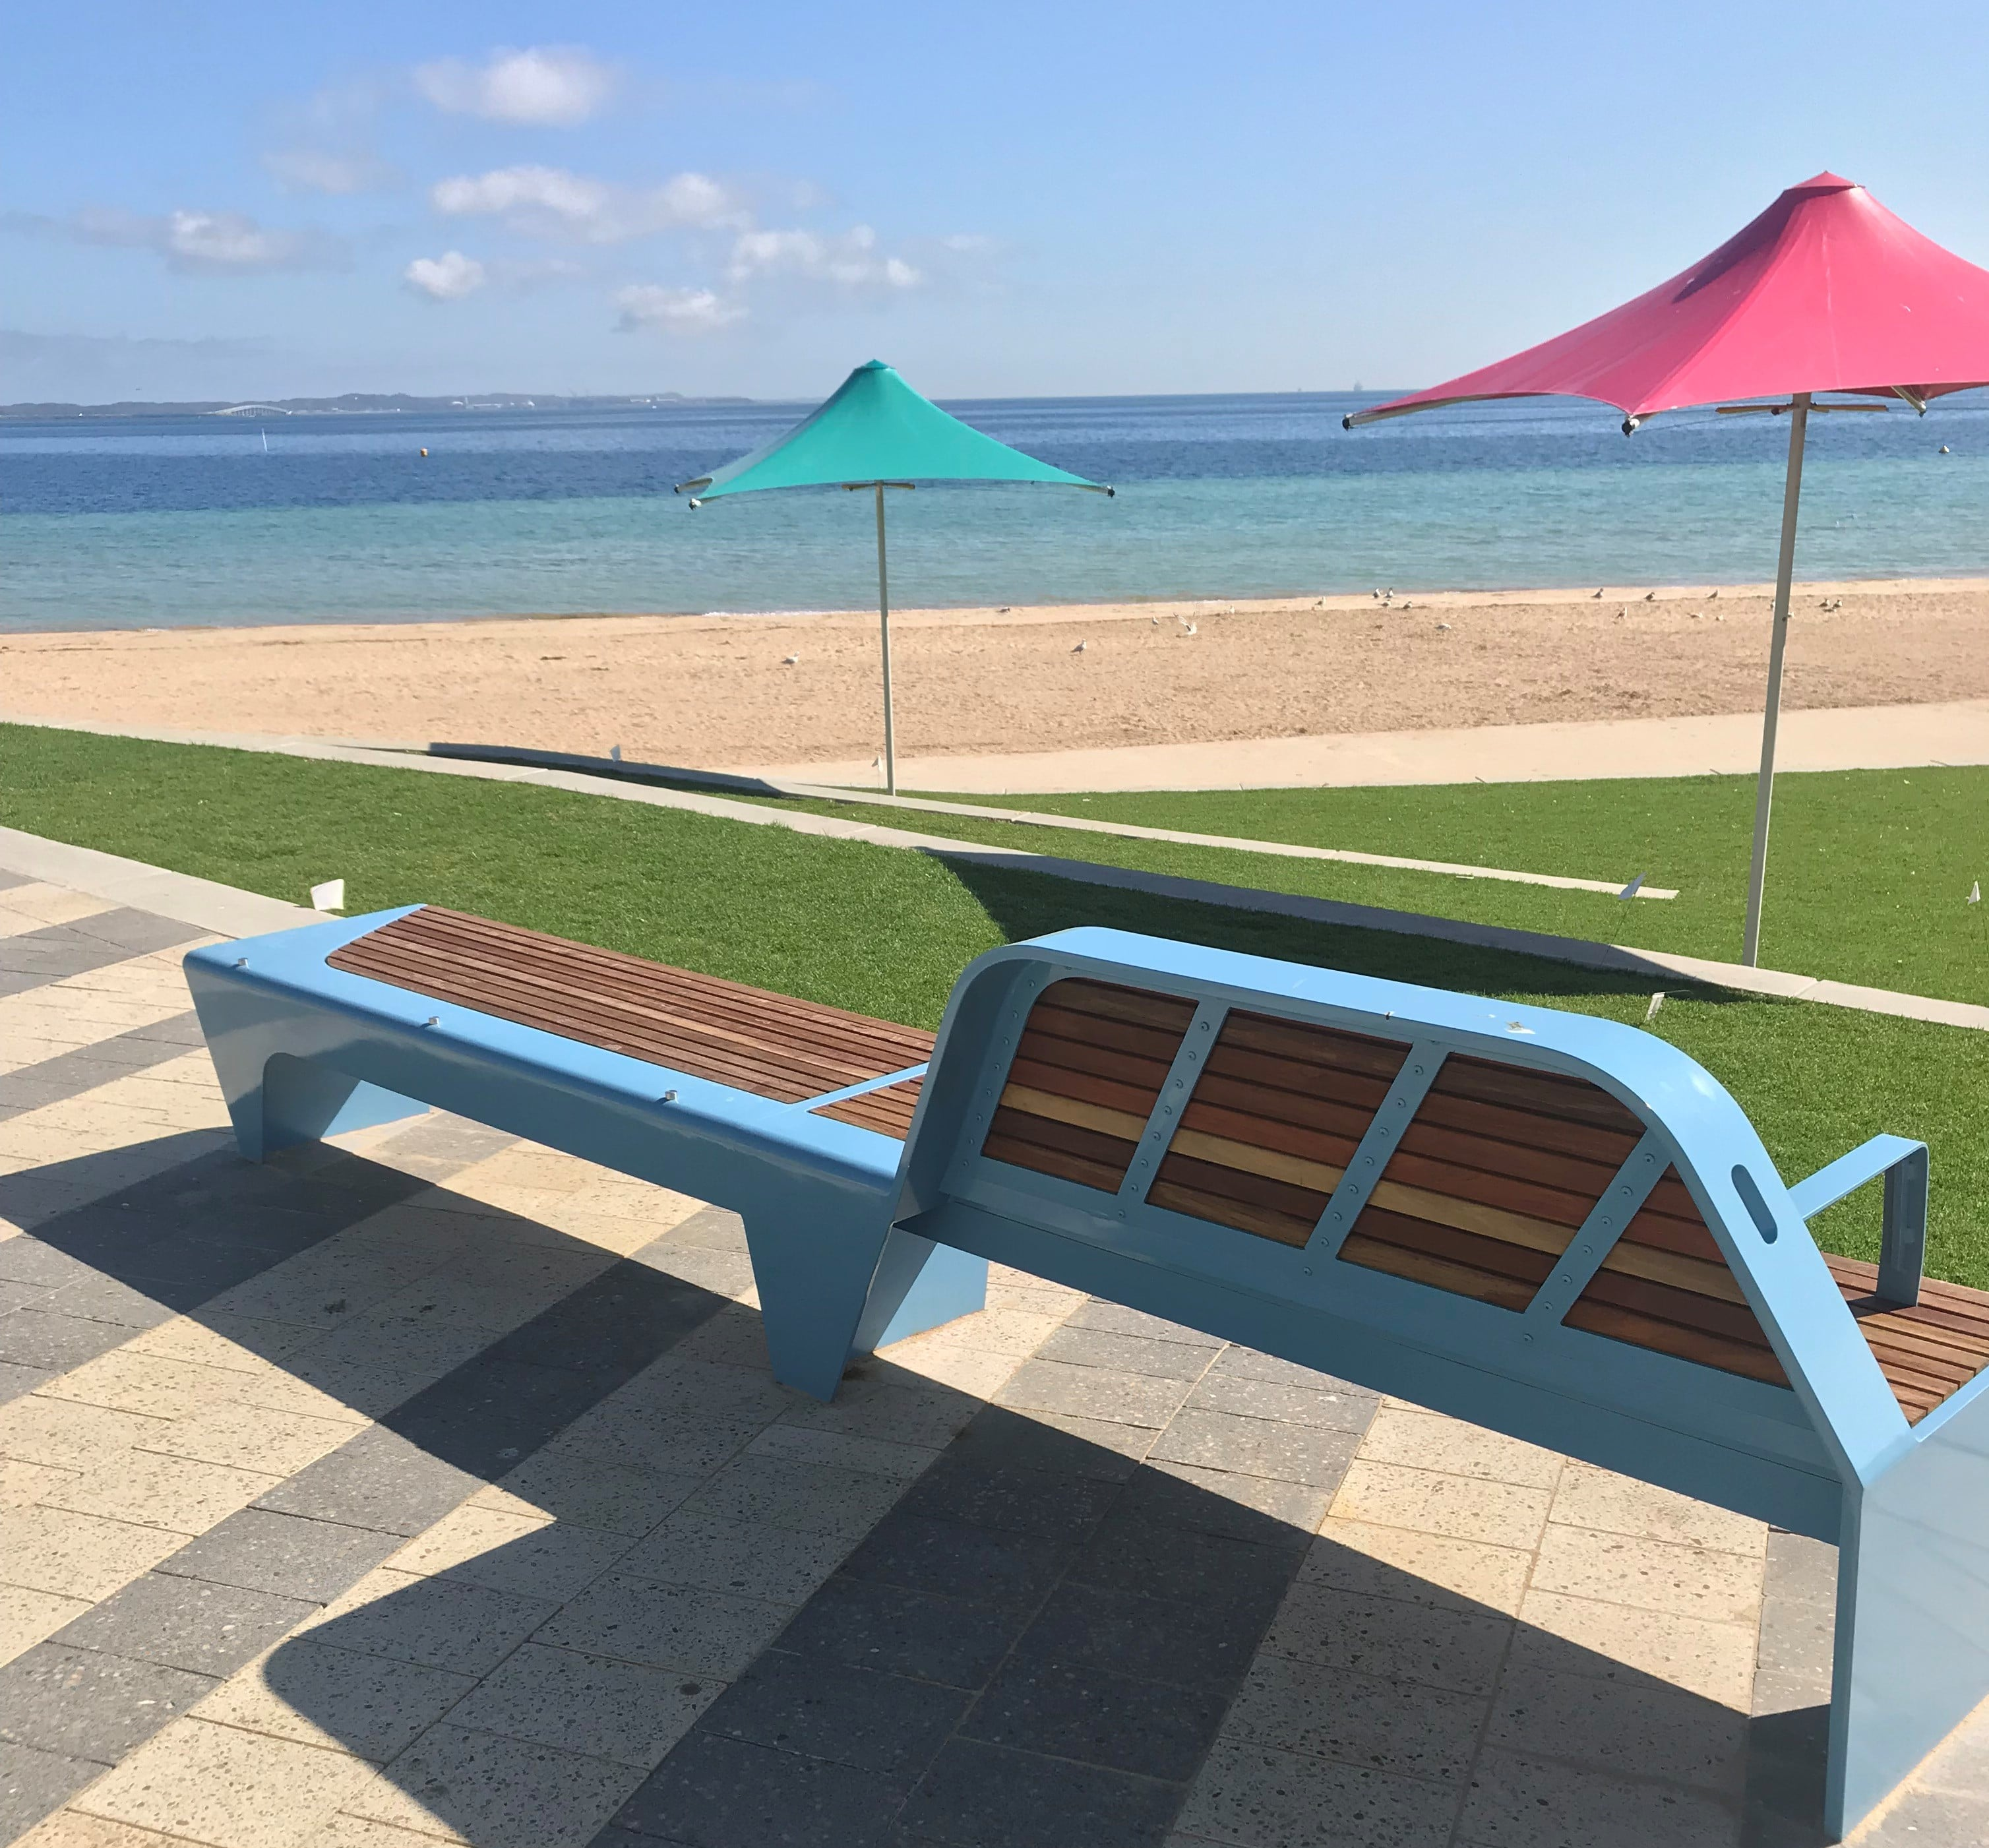 Marine grade protection for vibrant new beach precinct